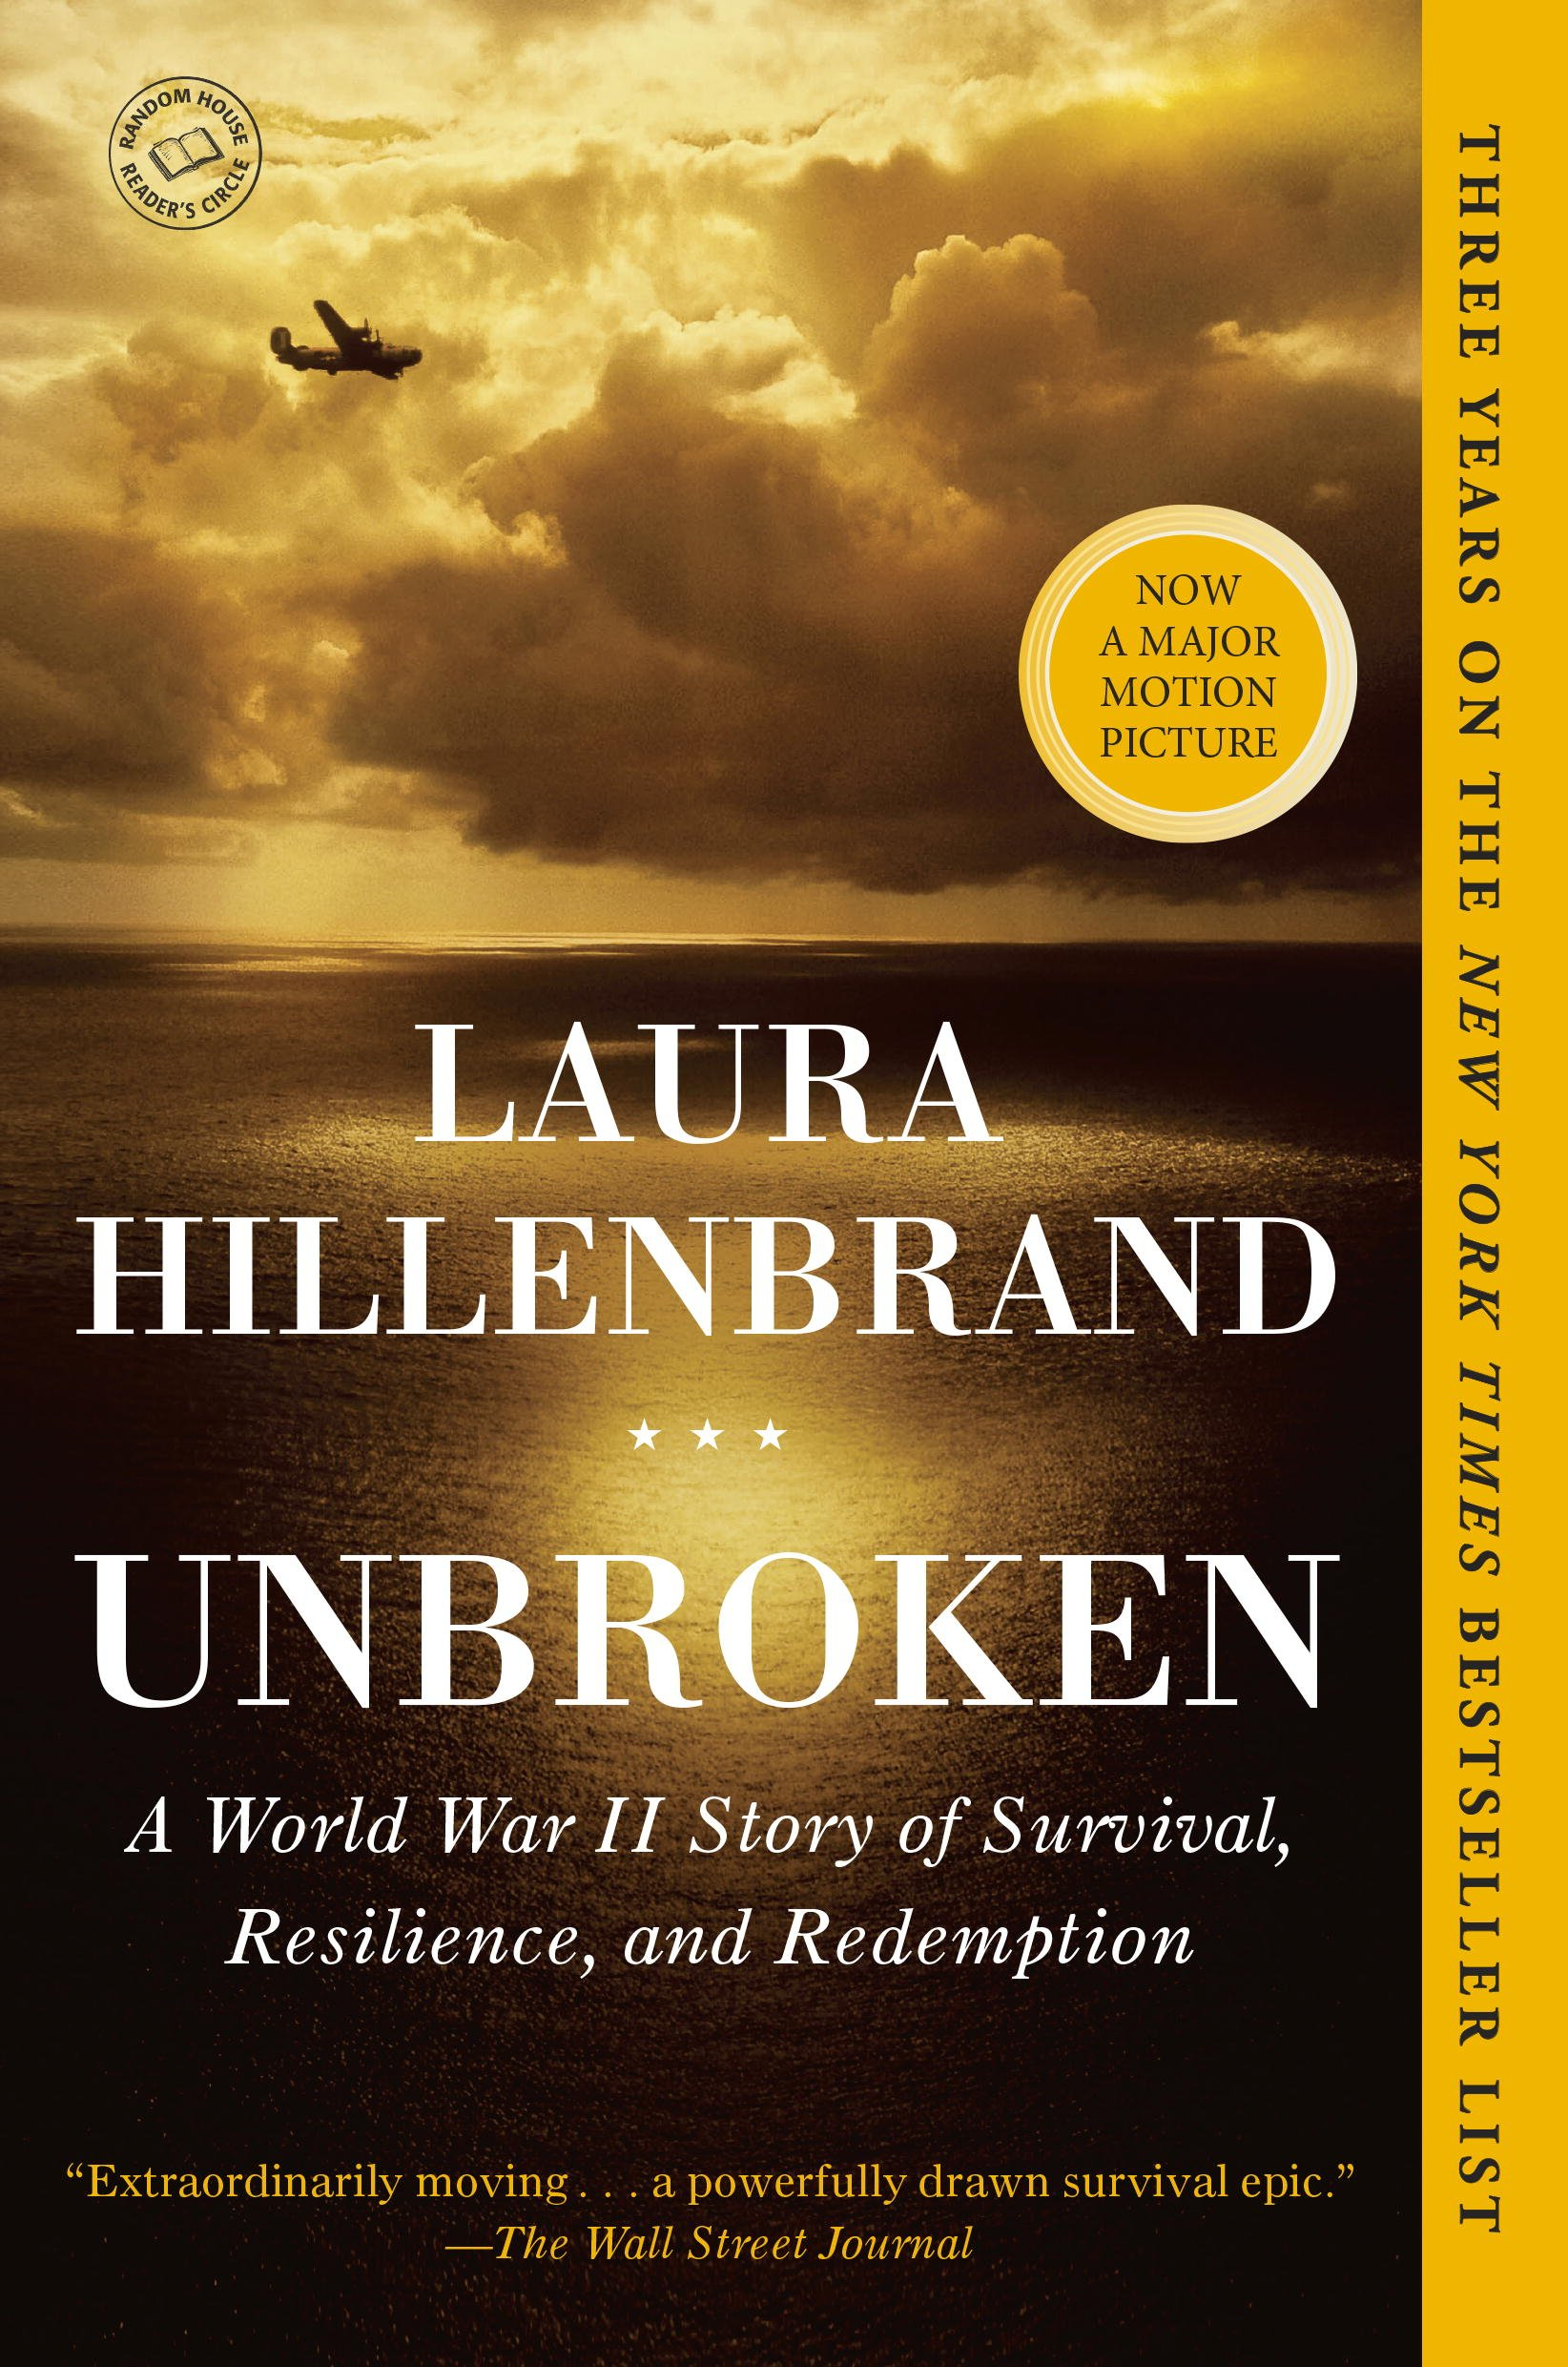 the extraordinary life of louis zamperini in unbroken a book by laura hillenbrand Tags: wwii, biography, history, japan, survival, olympics, war, louis zamperini,  so began one of the most extraordinary odysseys of the second world war  in her long-awaited new book, laura hillenbrand writes with the same rich and.